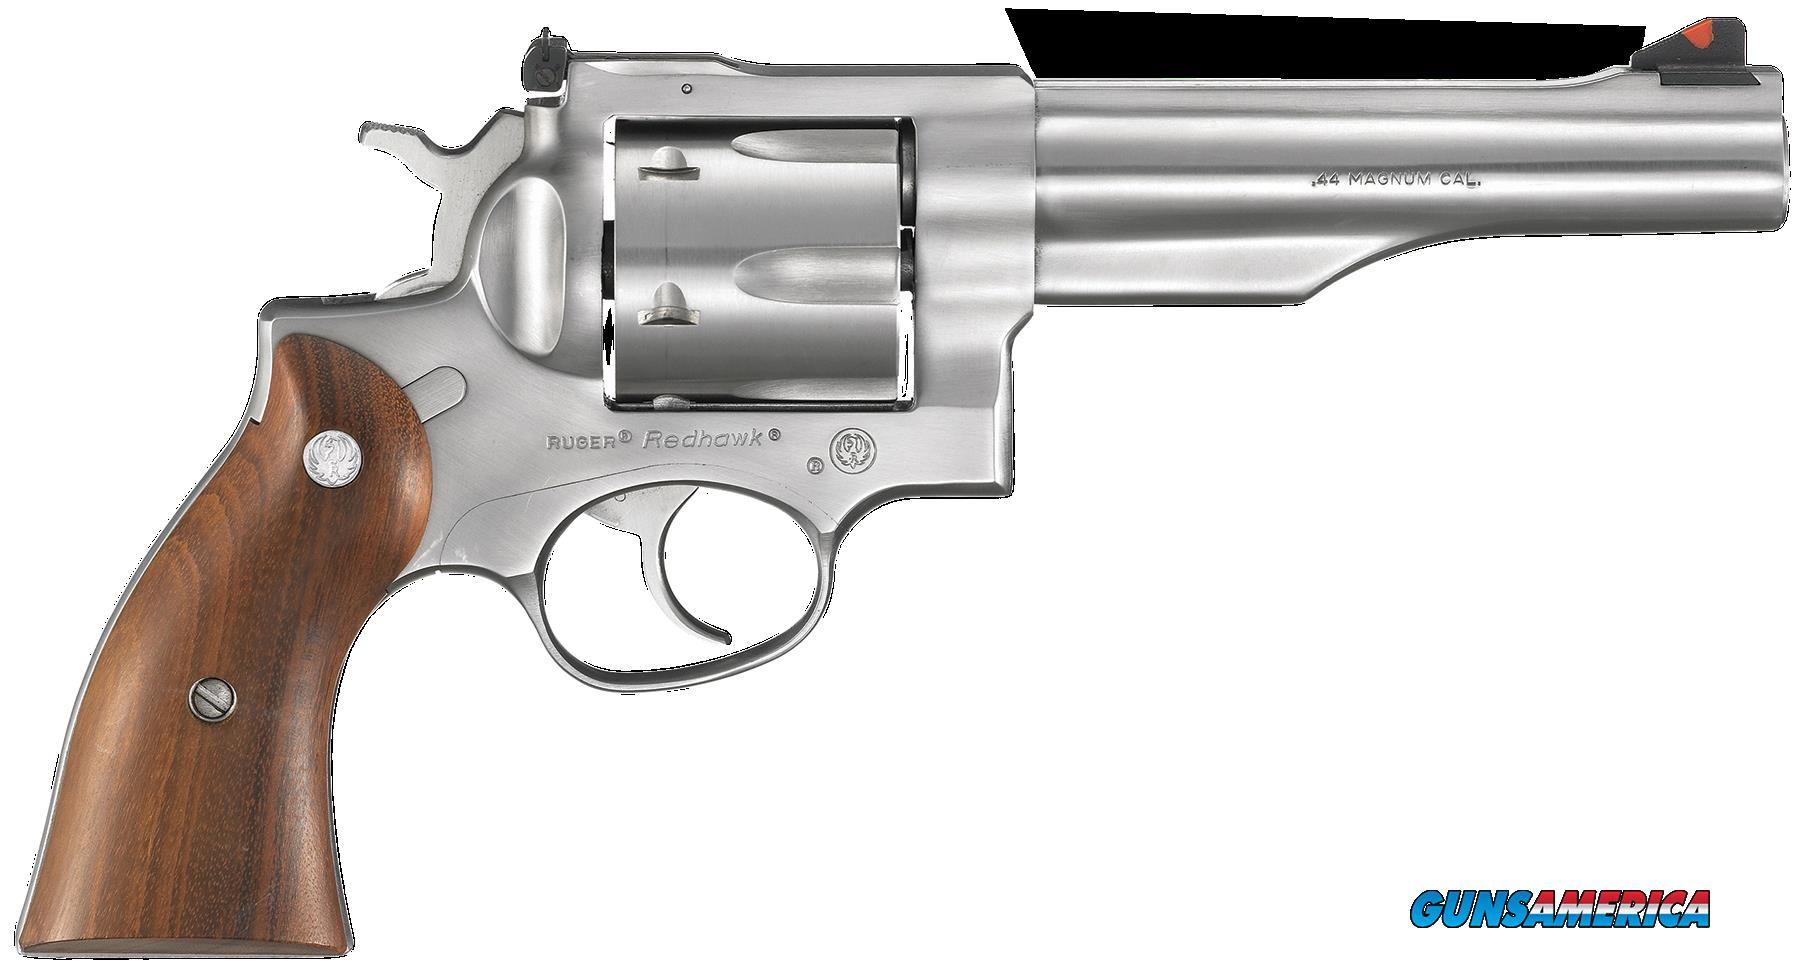 "Ruger 5004 Redhawk Single/Double 44 Remington Magnum 5.5"" 6 rd Hardwood Grip Stainless Steel  Guns > Pistols > Ruger Double Action Revolver > Redhawk Type"